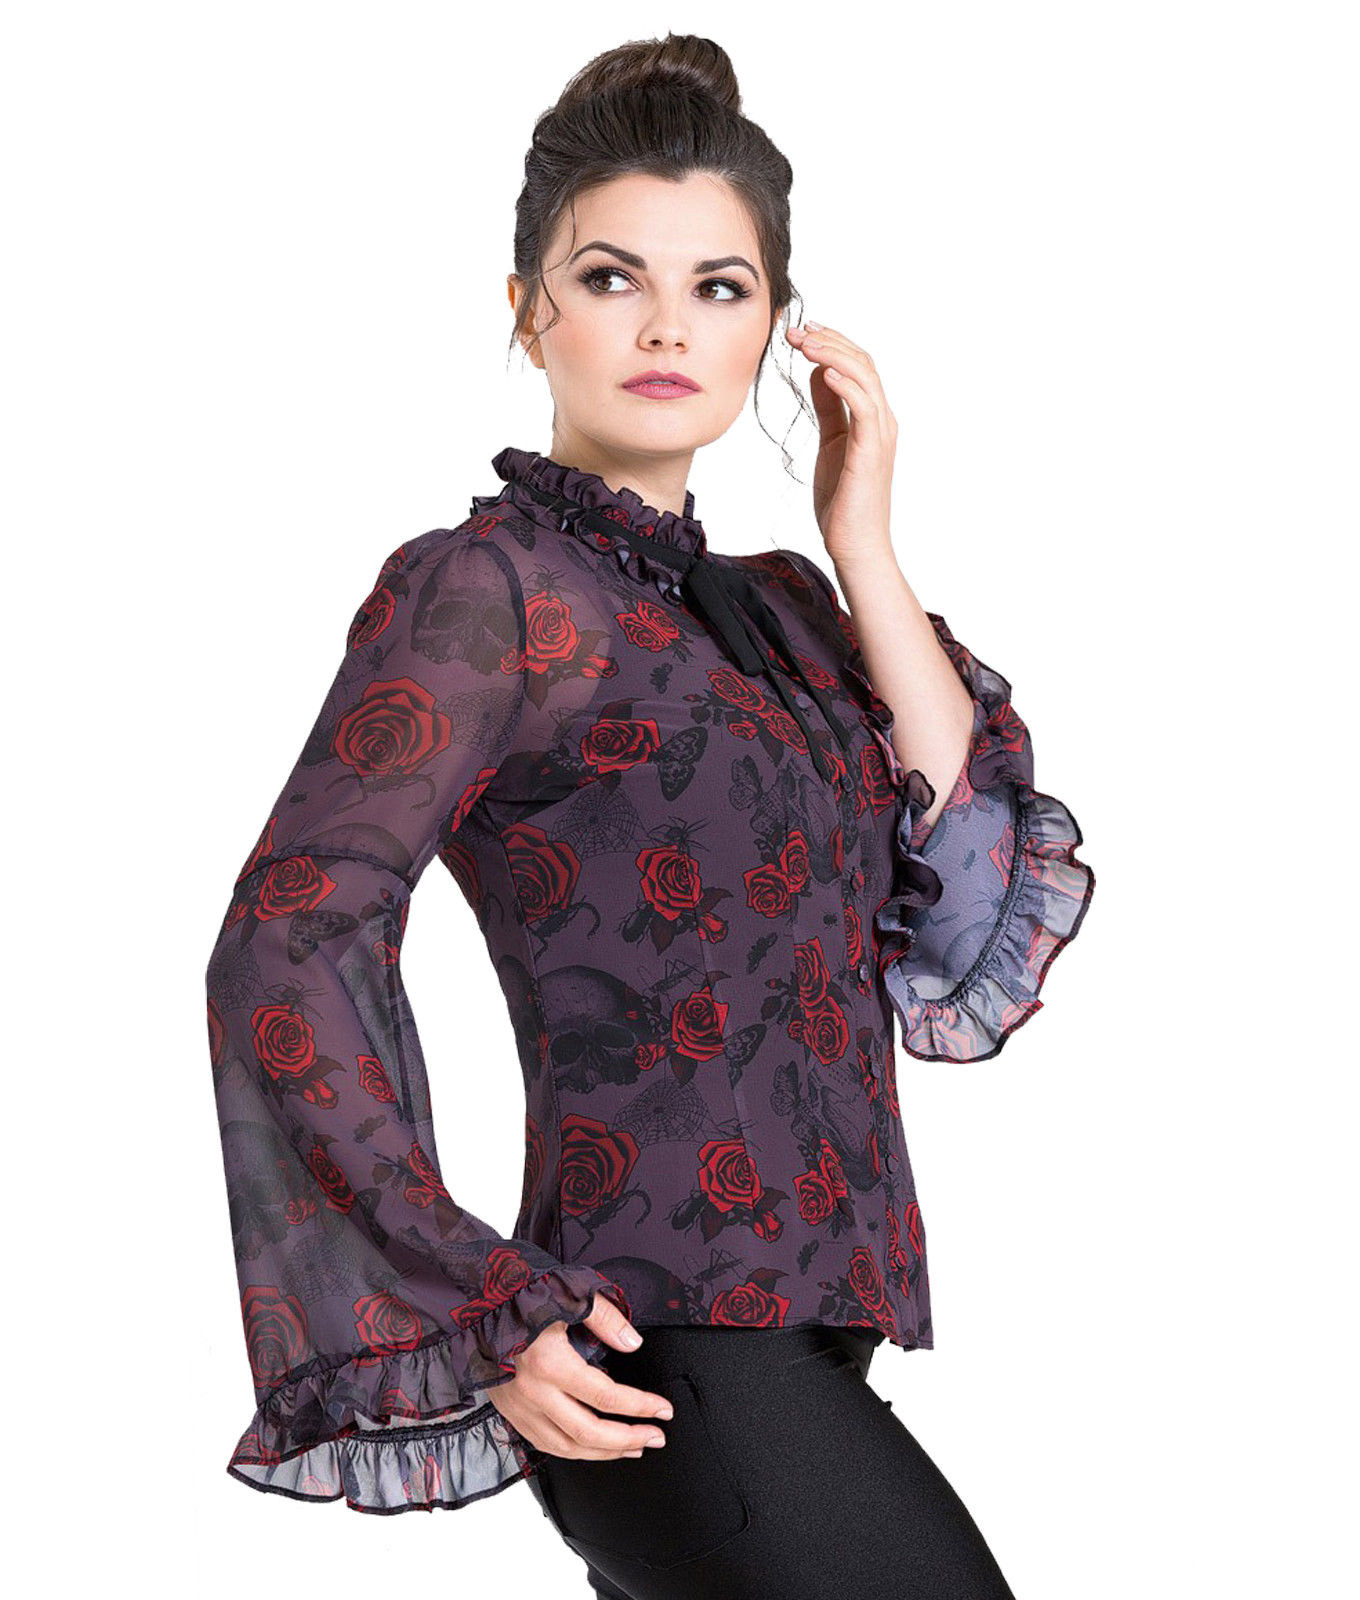 Hell-Bunny-Chiffon-Shirt-Top-Gothic-Floaty-BUGS-amp-ROSES-Purple-Blouse-All-Sizes thumbnail 5